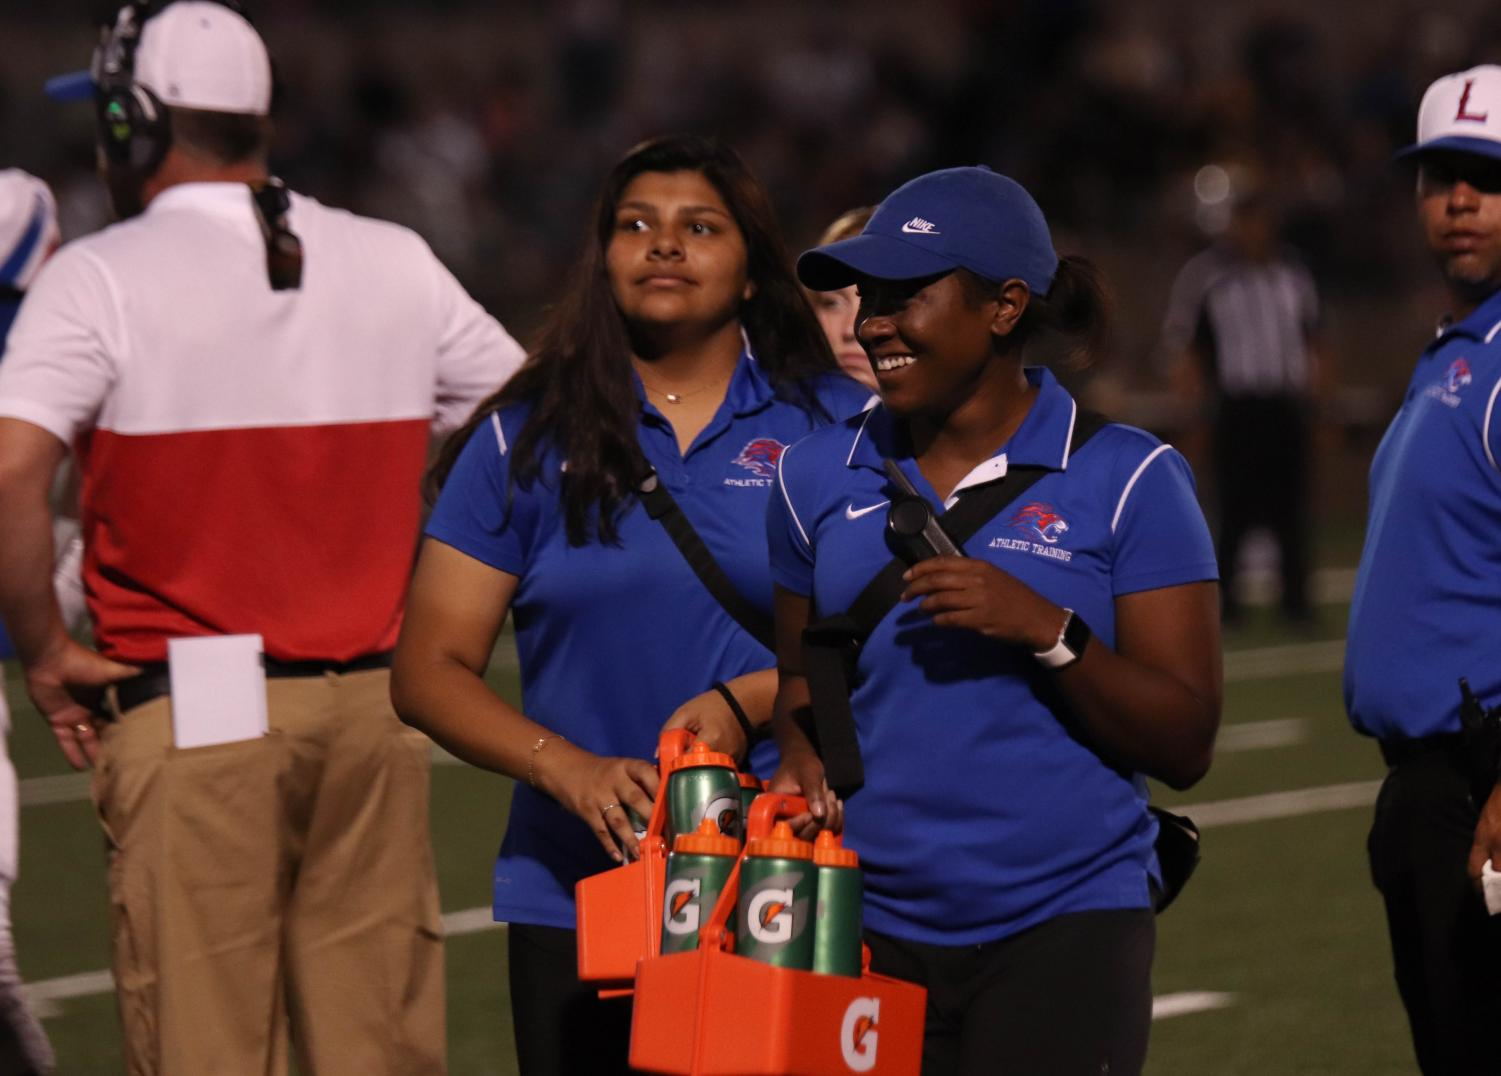 On Aug. 13, athletic trainer Aerin Henderson helps out on the field during a varsity football game against Stony Point.